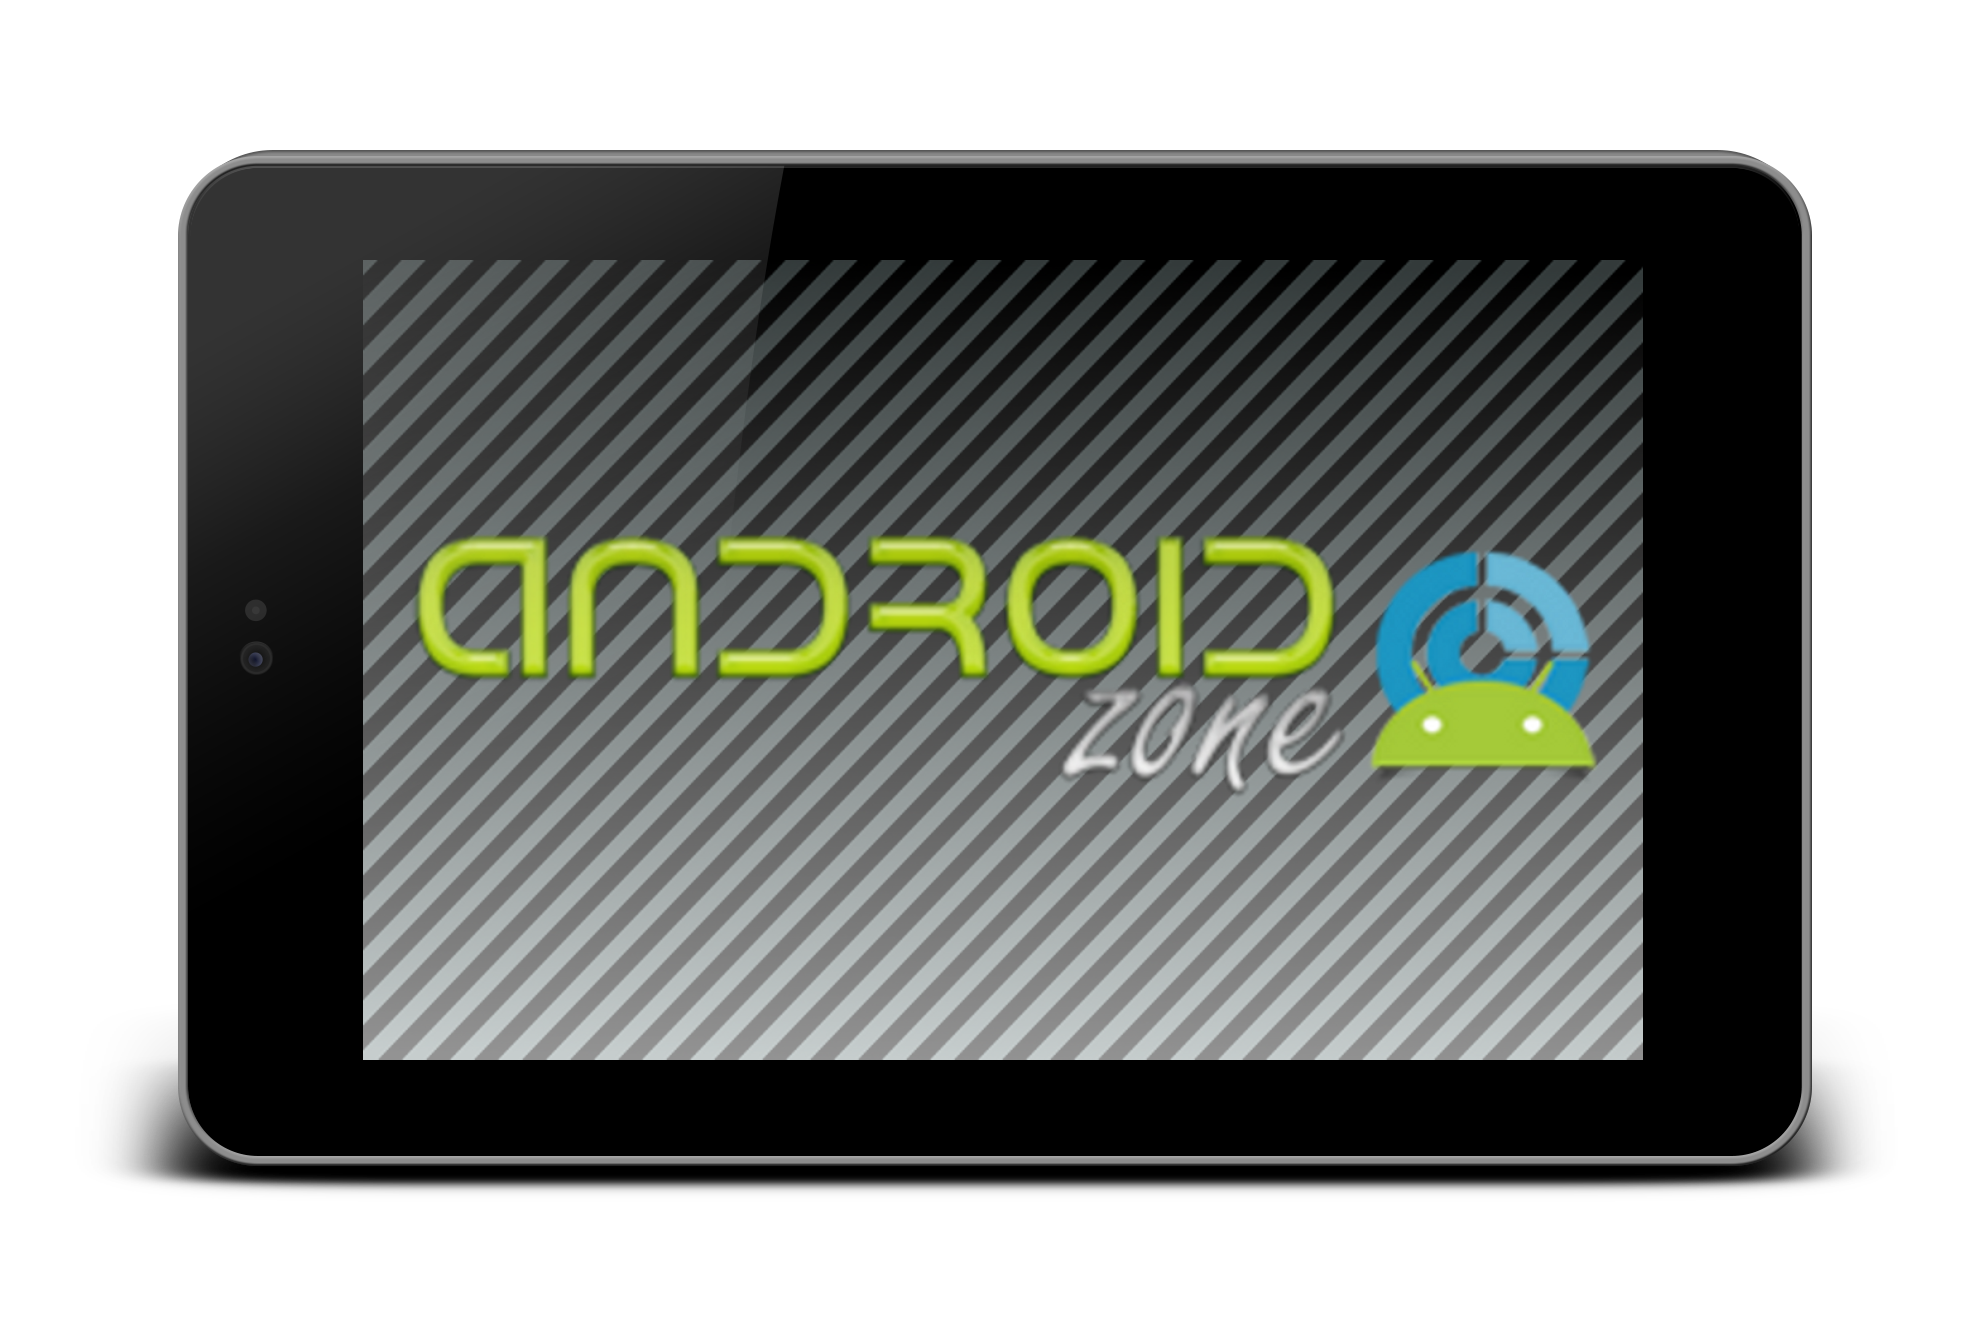 Android Zone en Nexus 7